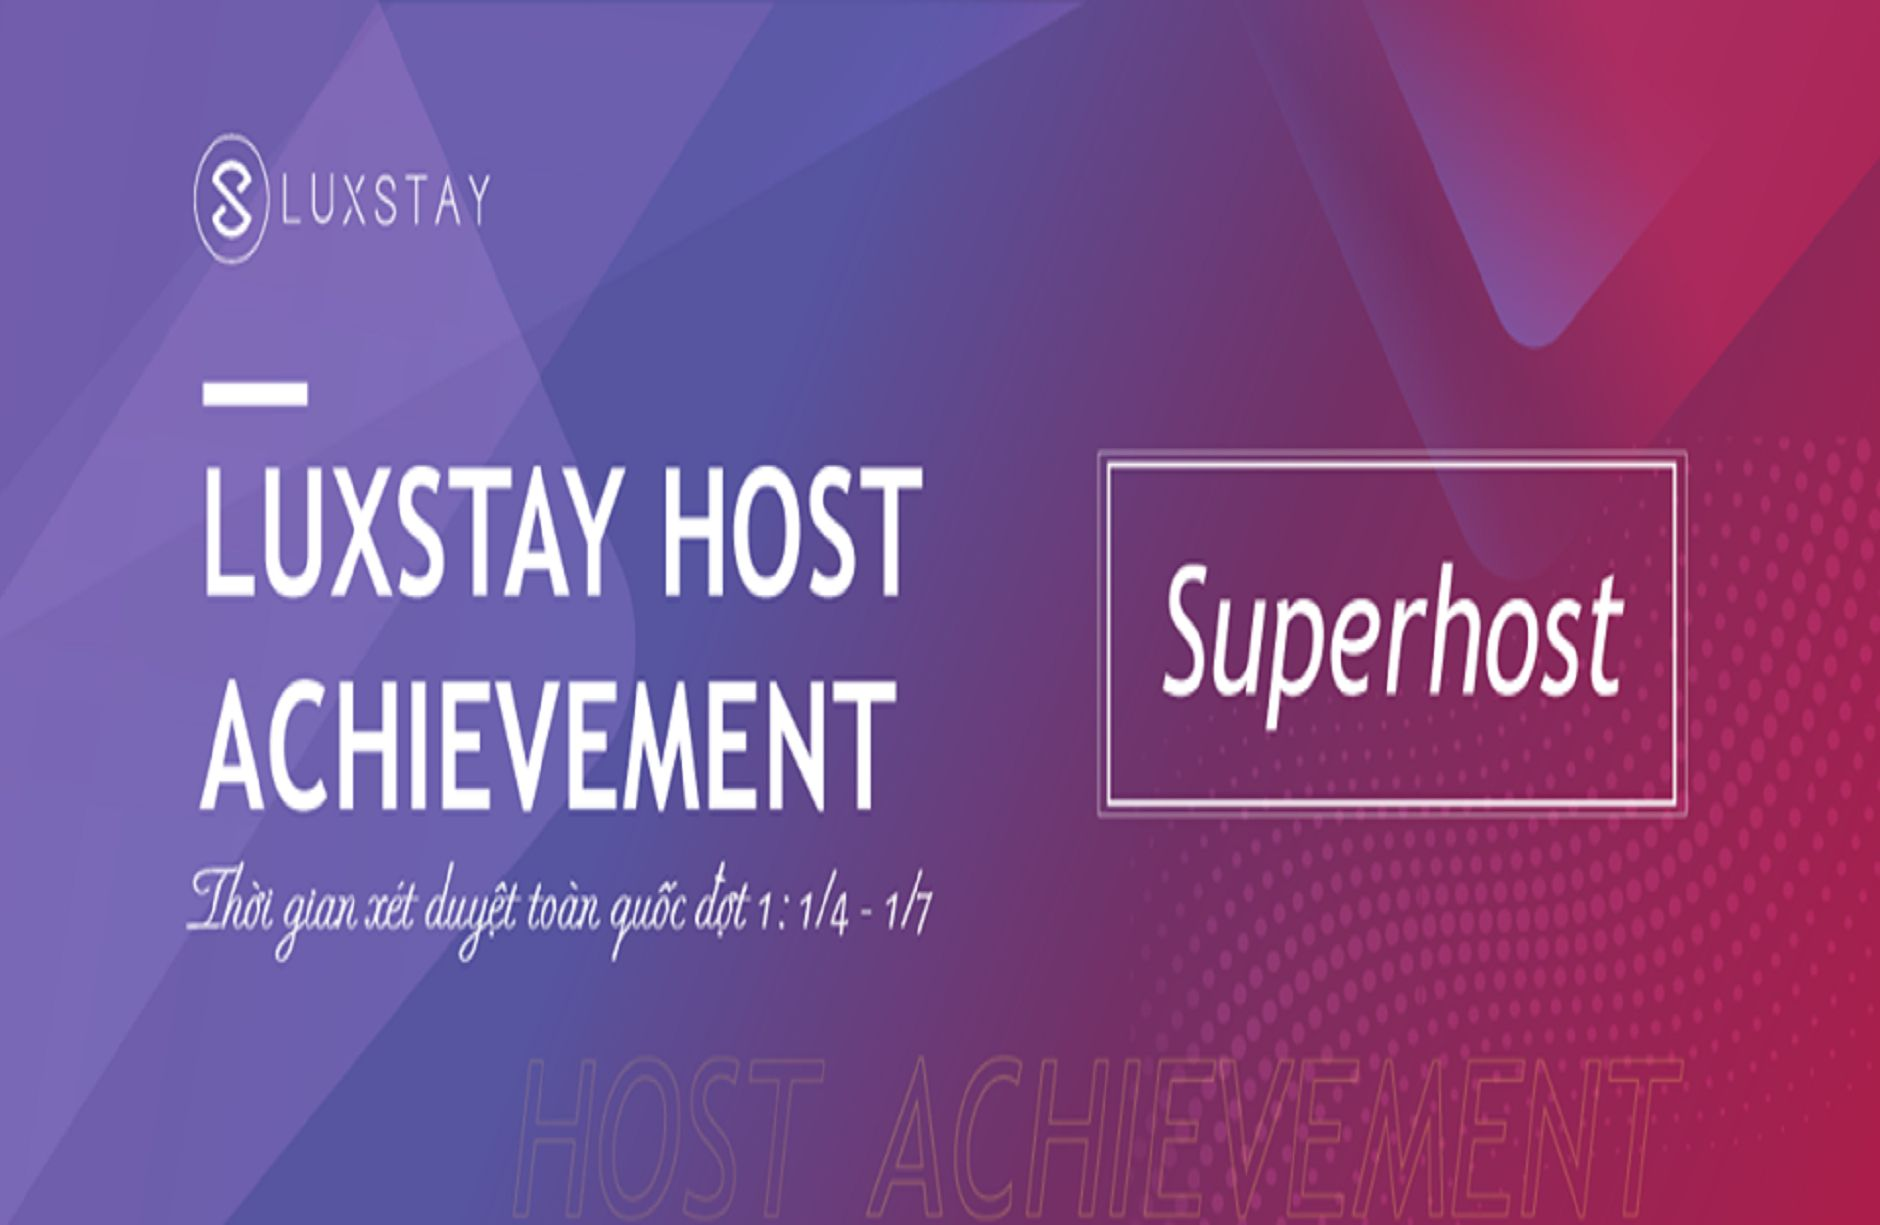 huong-toi-danh-hieu-cao-quy-luxstay-superhost